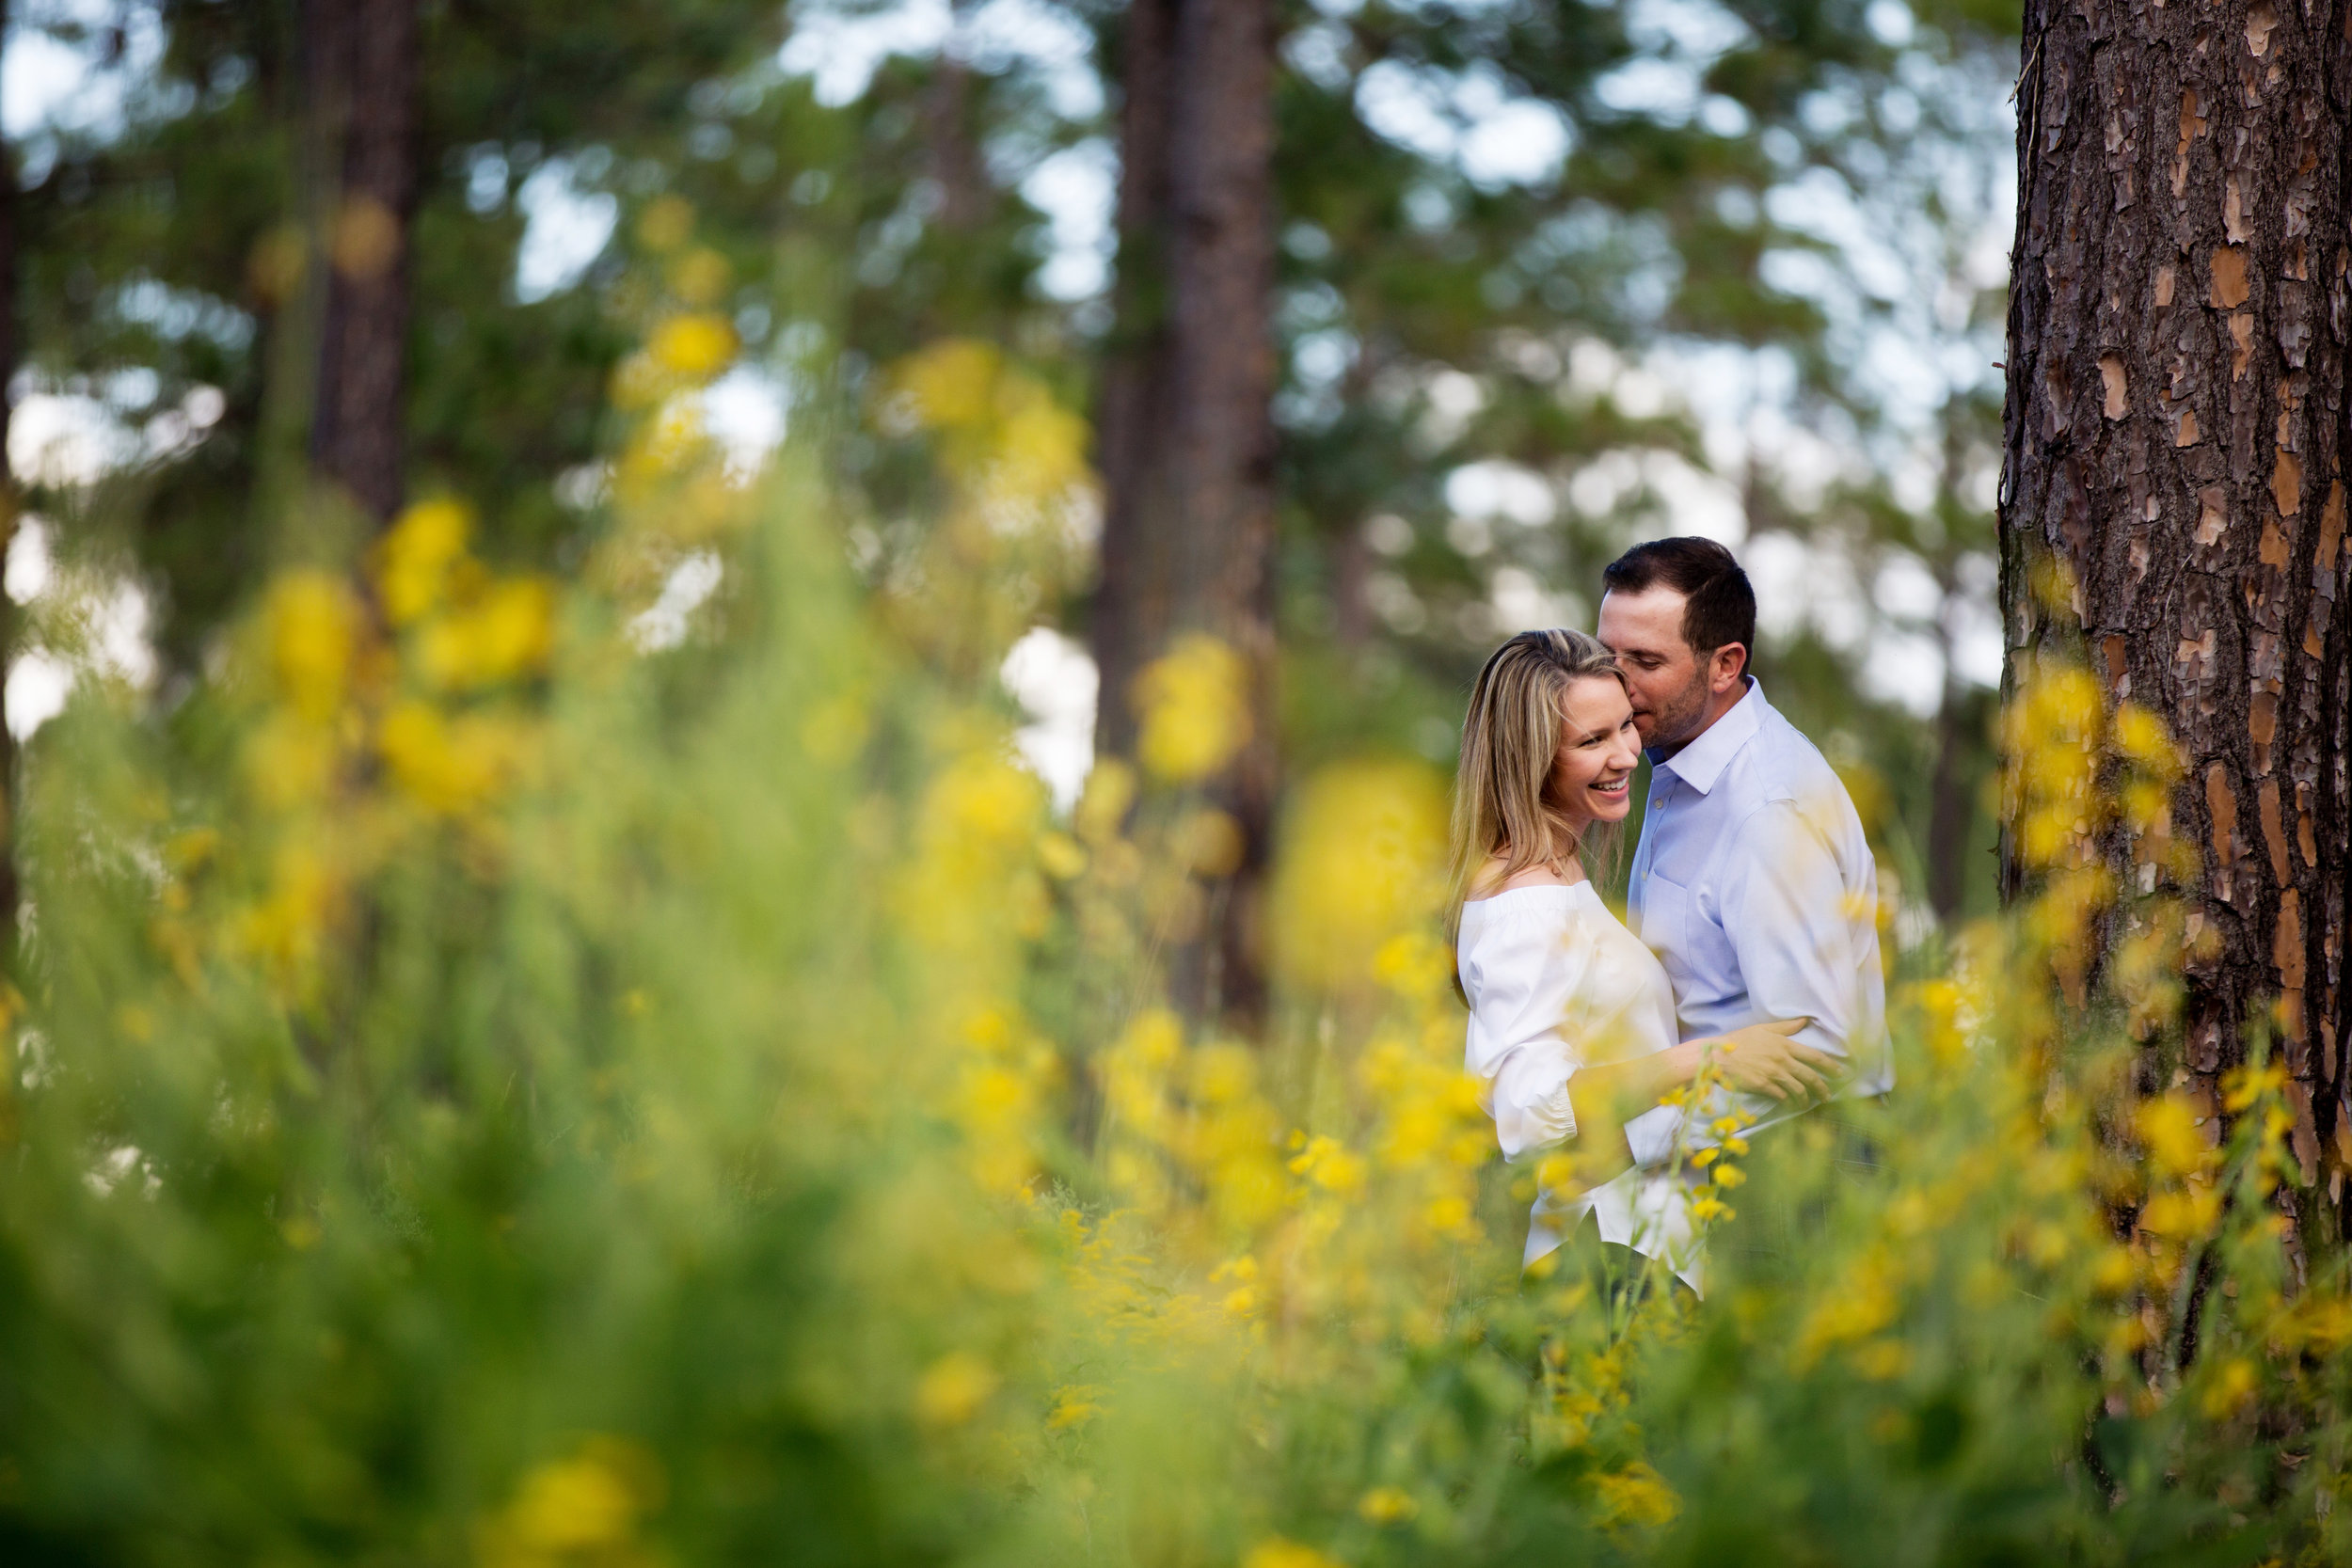 Outdoor Engagement Photography in a field with yellow flowers